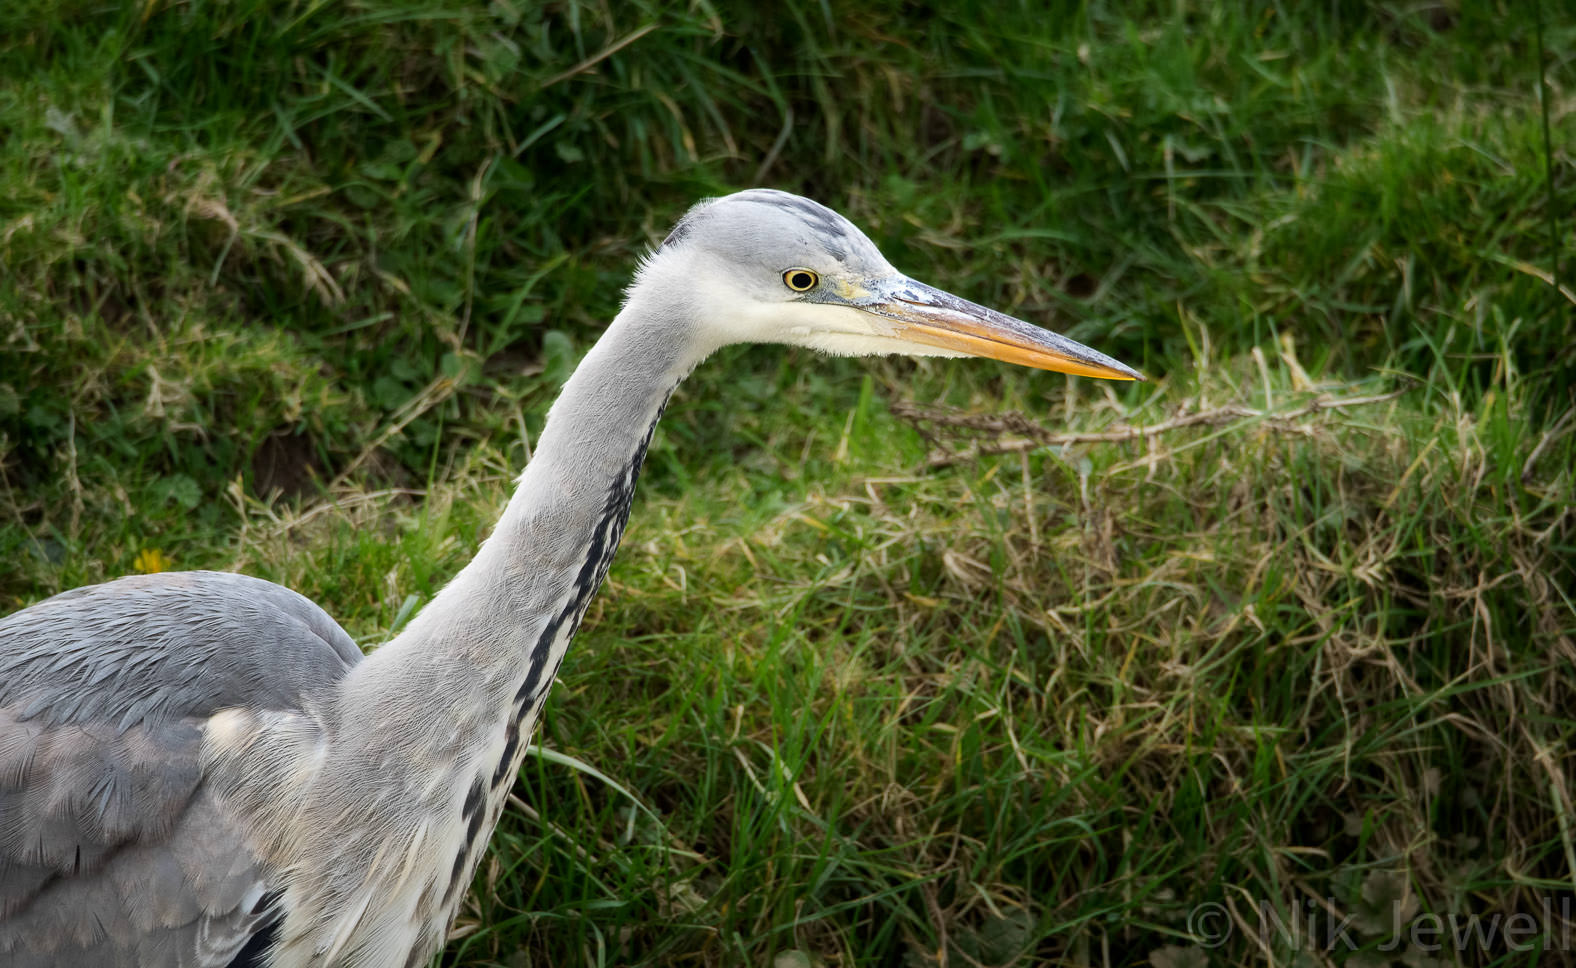 After-Heron, Bude Marshes